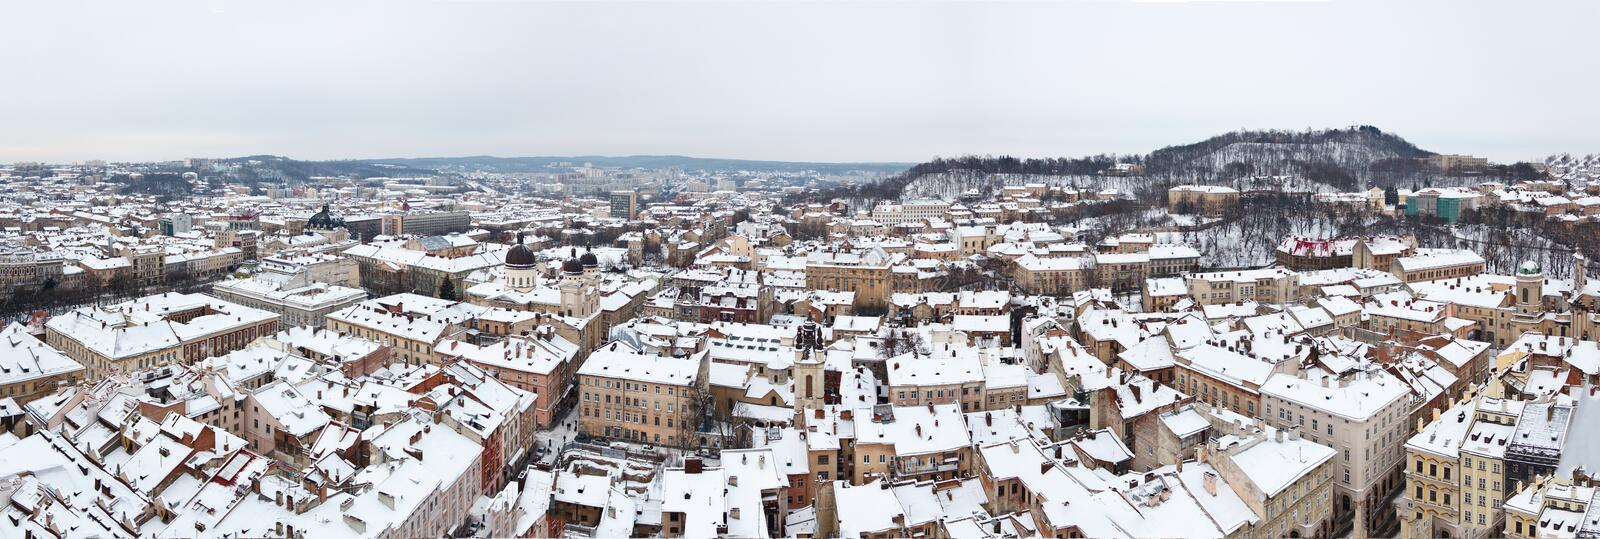 Roofs of Lviv, Ukraine - January 26, 2012. Wine panorama over Lvov city on snpowy winter day. Old historical downtown royalty free stock image